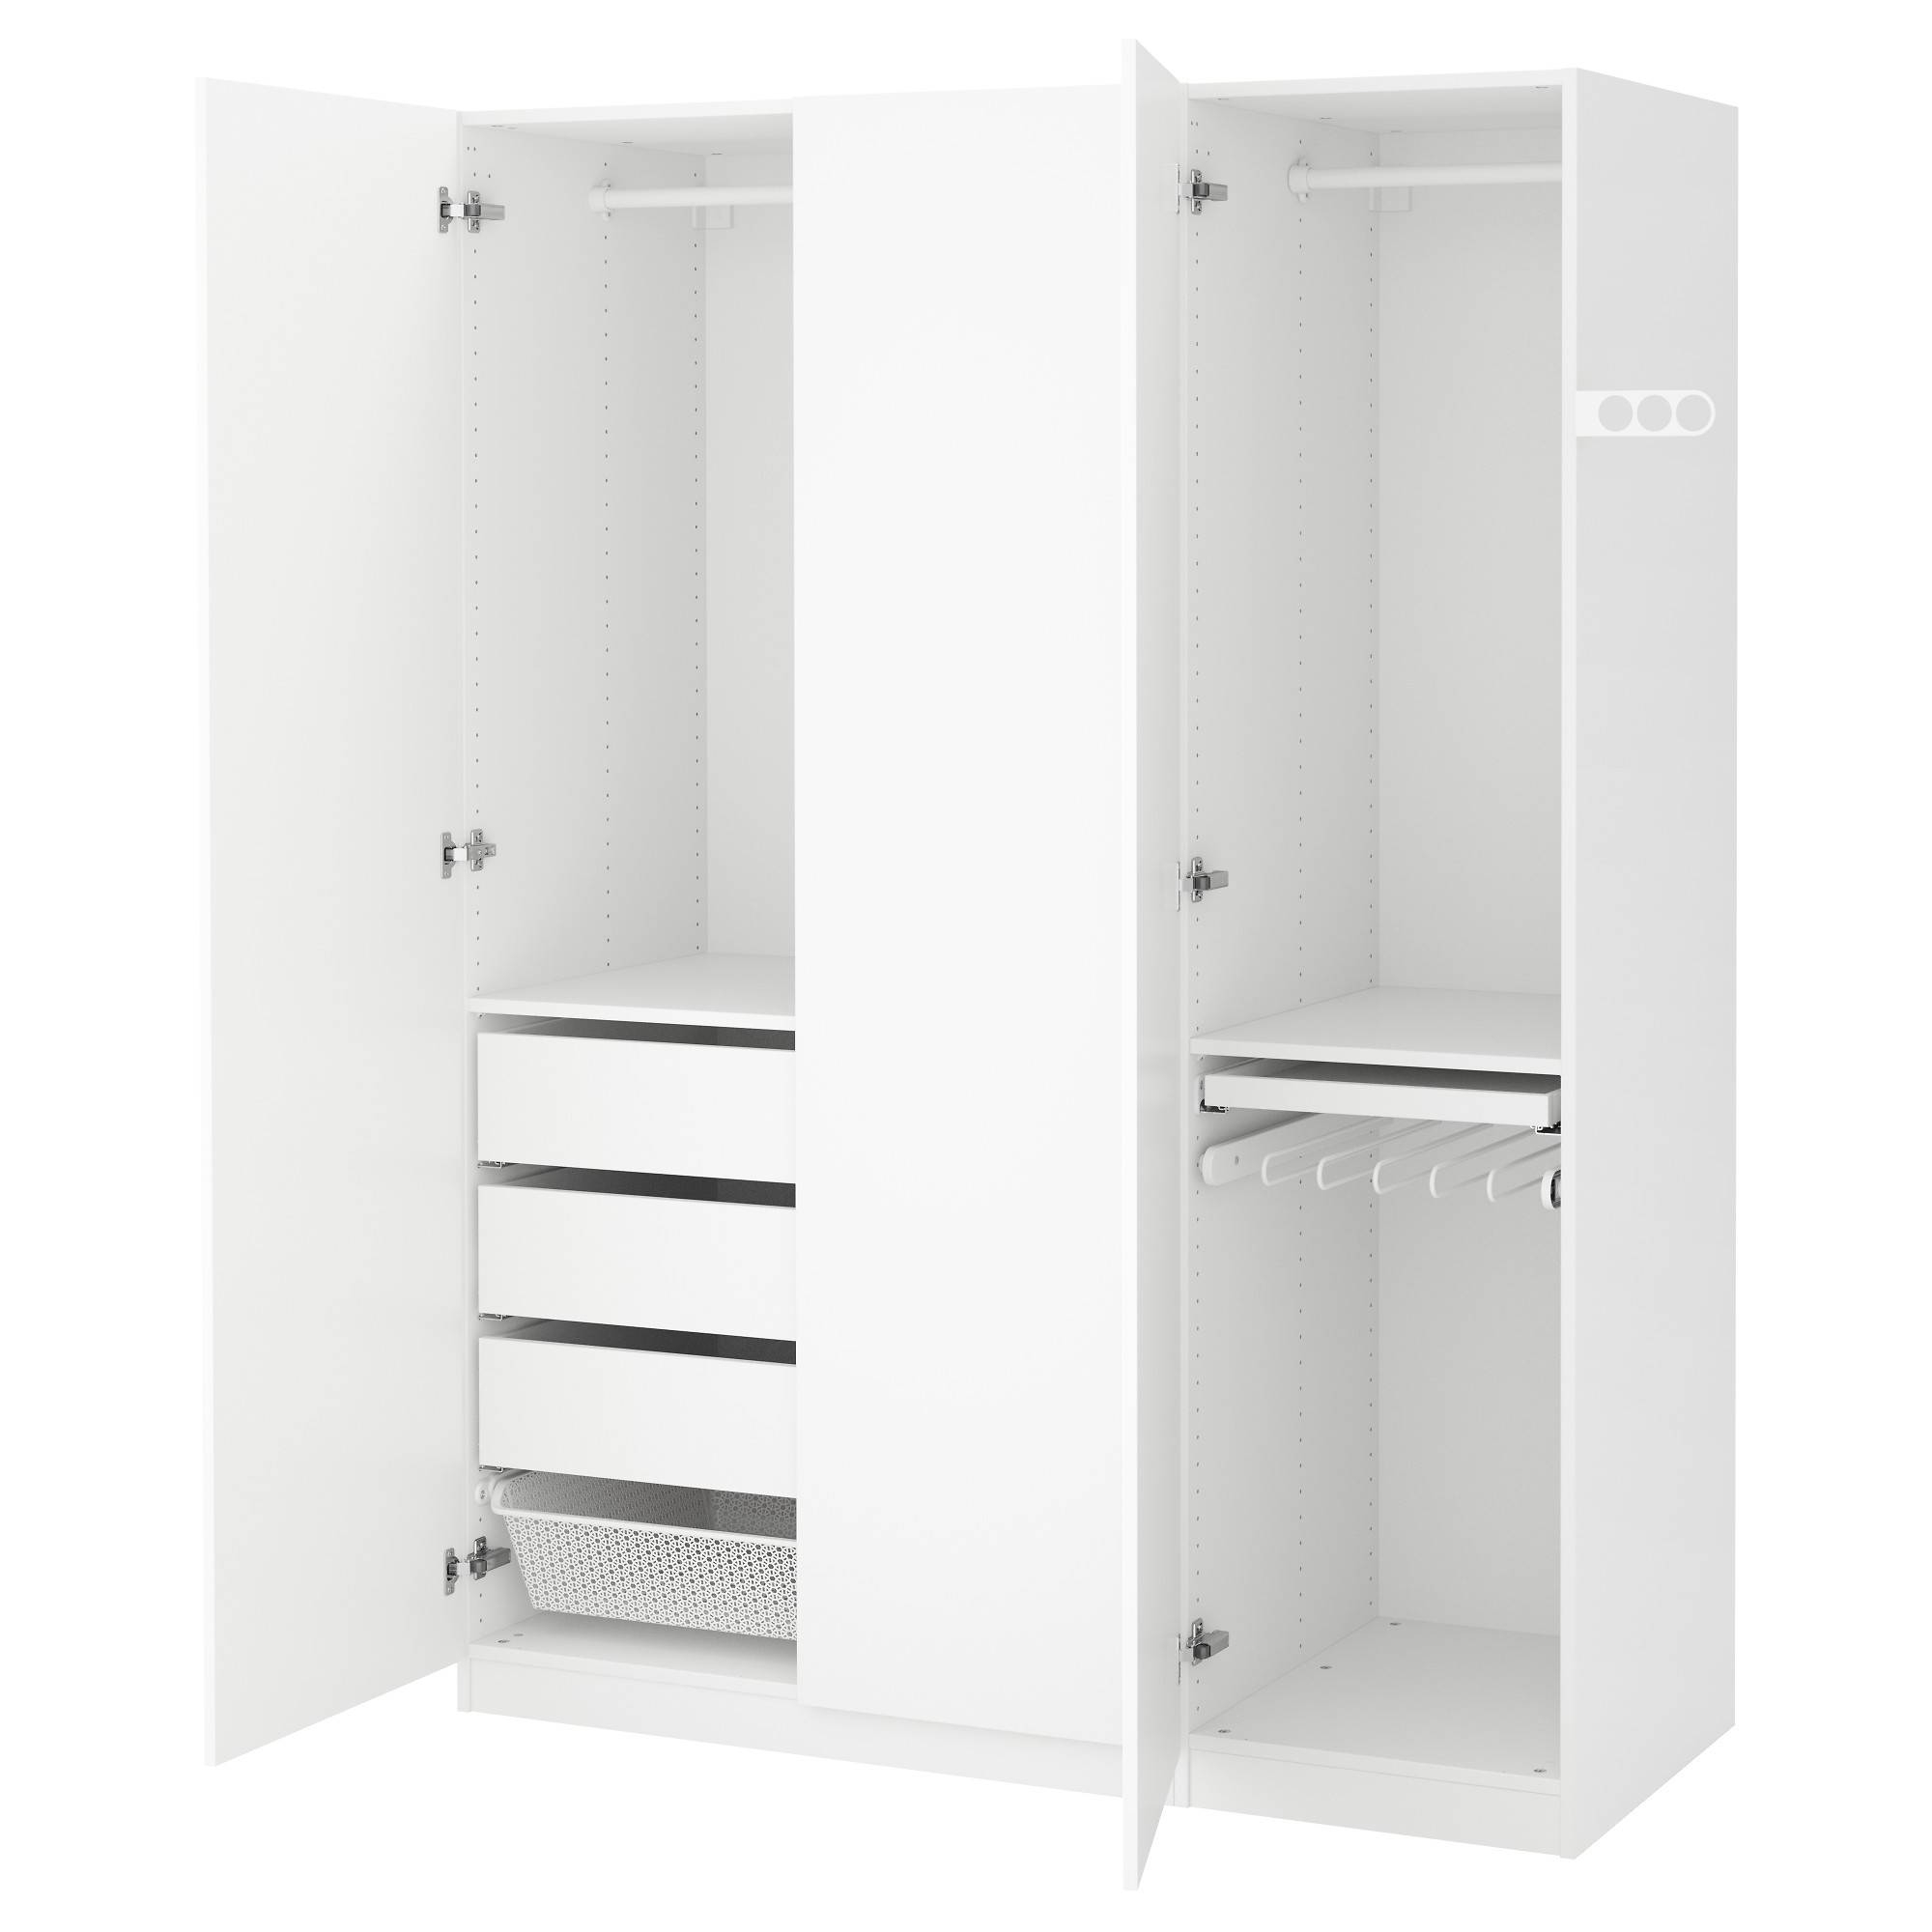 Wardrobes, Armoires & Closets - Ikea with regard to Single White Wardrobes With Drawers (Image 14 of 15)